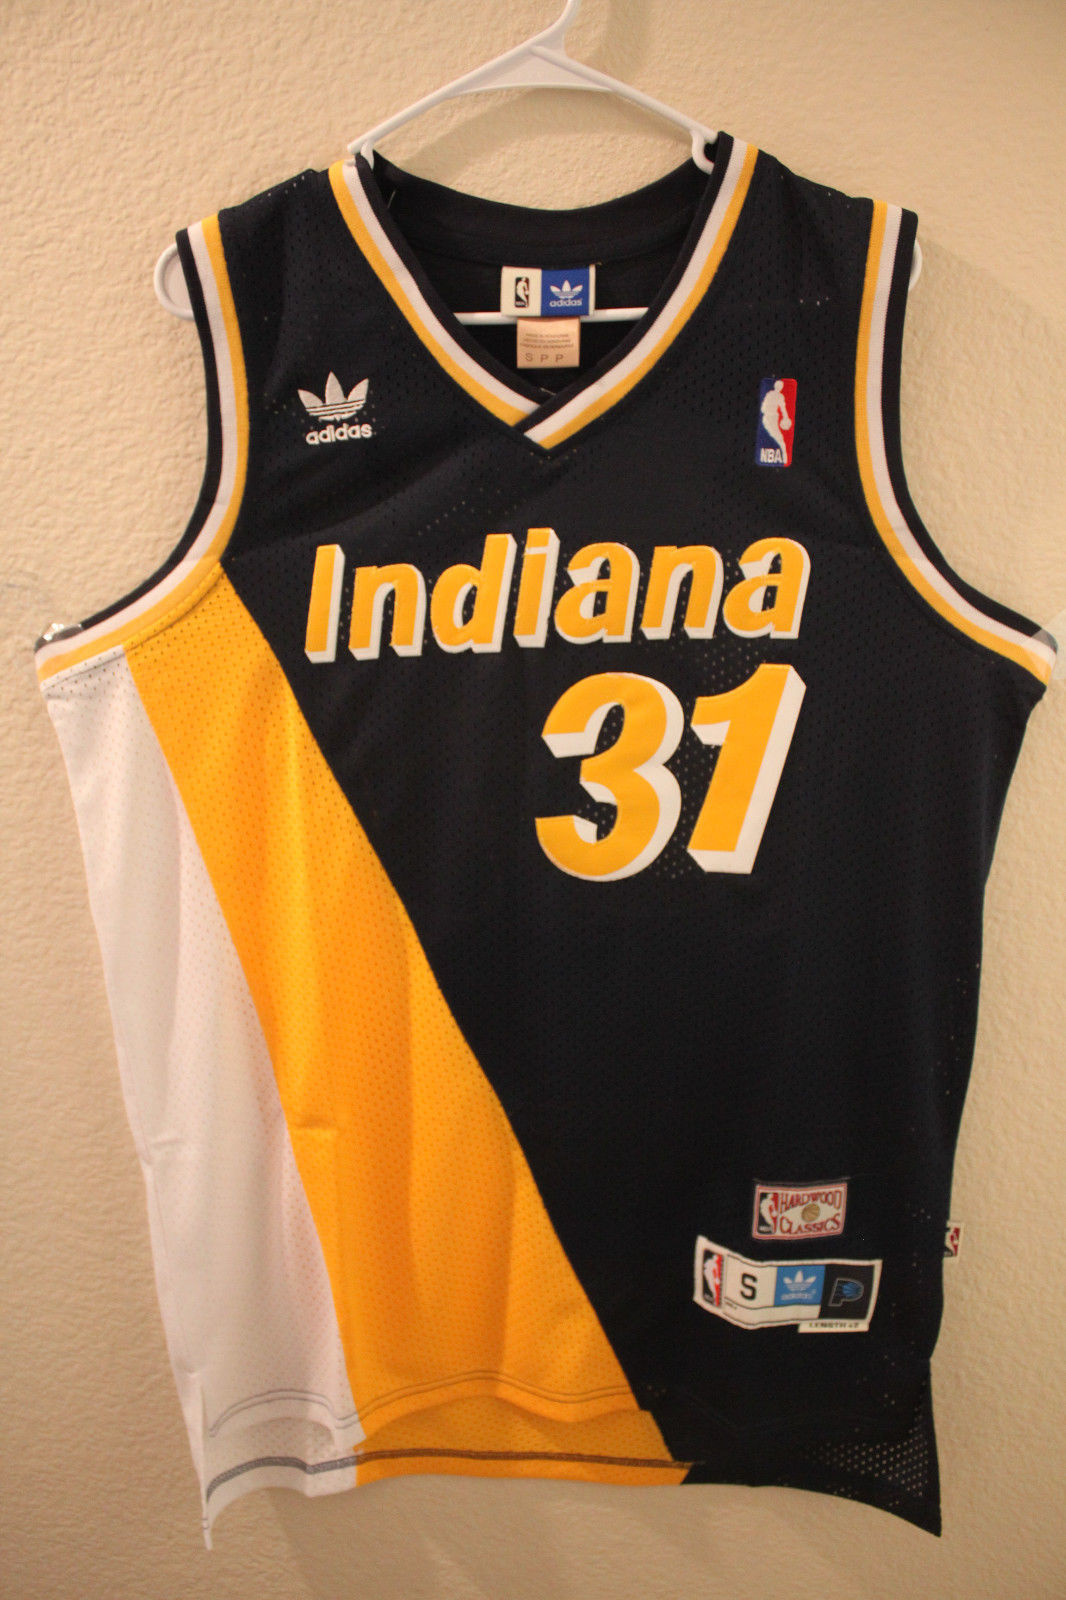 outlet store 606c4 b3e88 Indiana Pacers Reggie Miller Cheap Retro Throwback Jersey ...